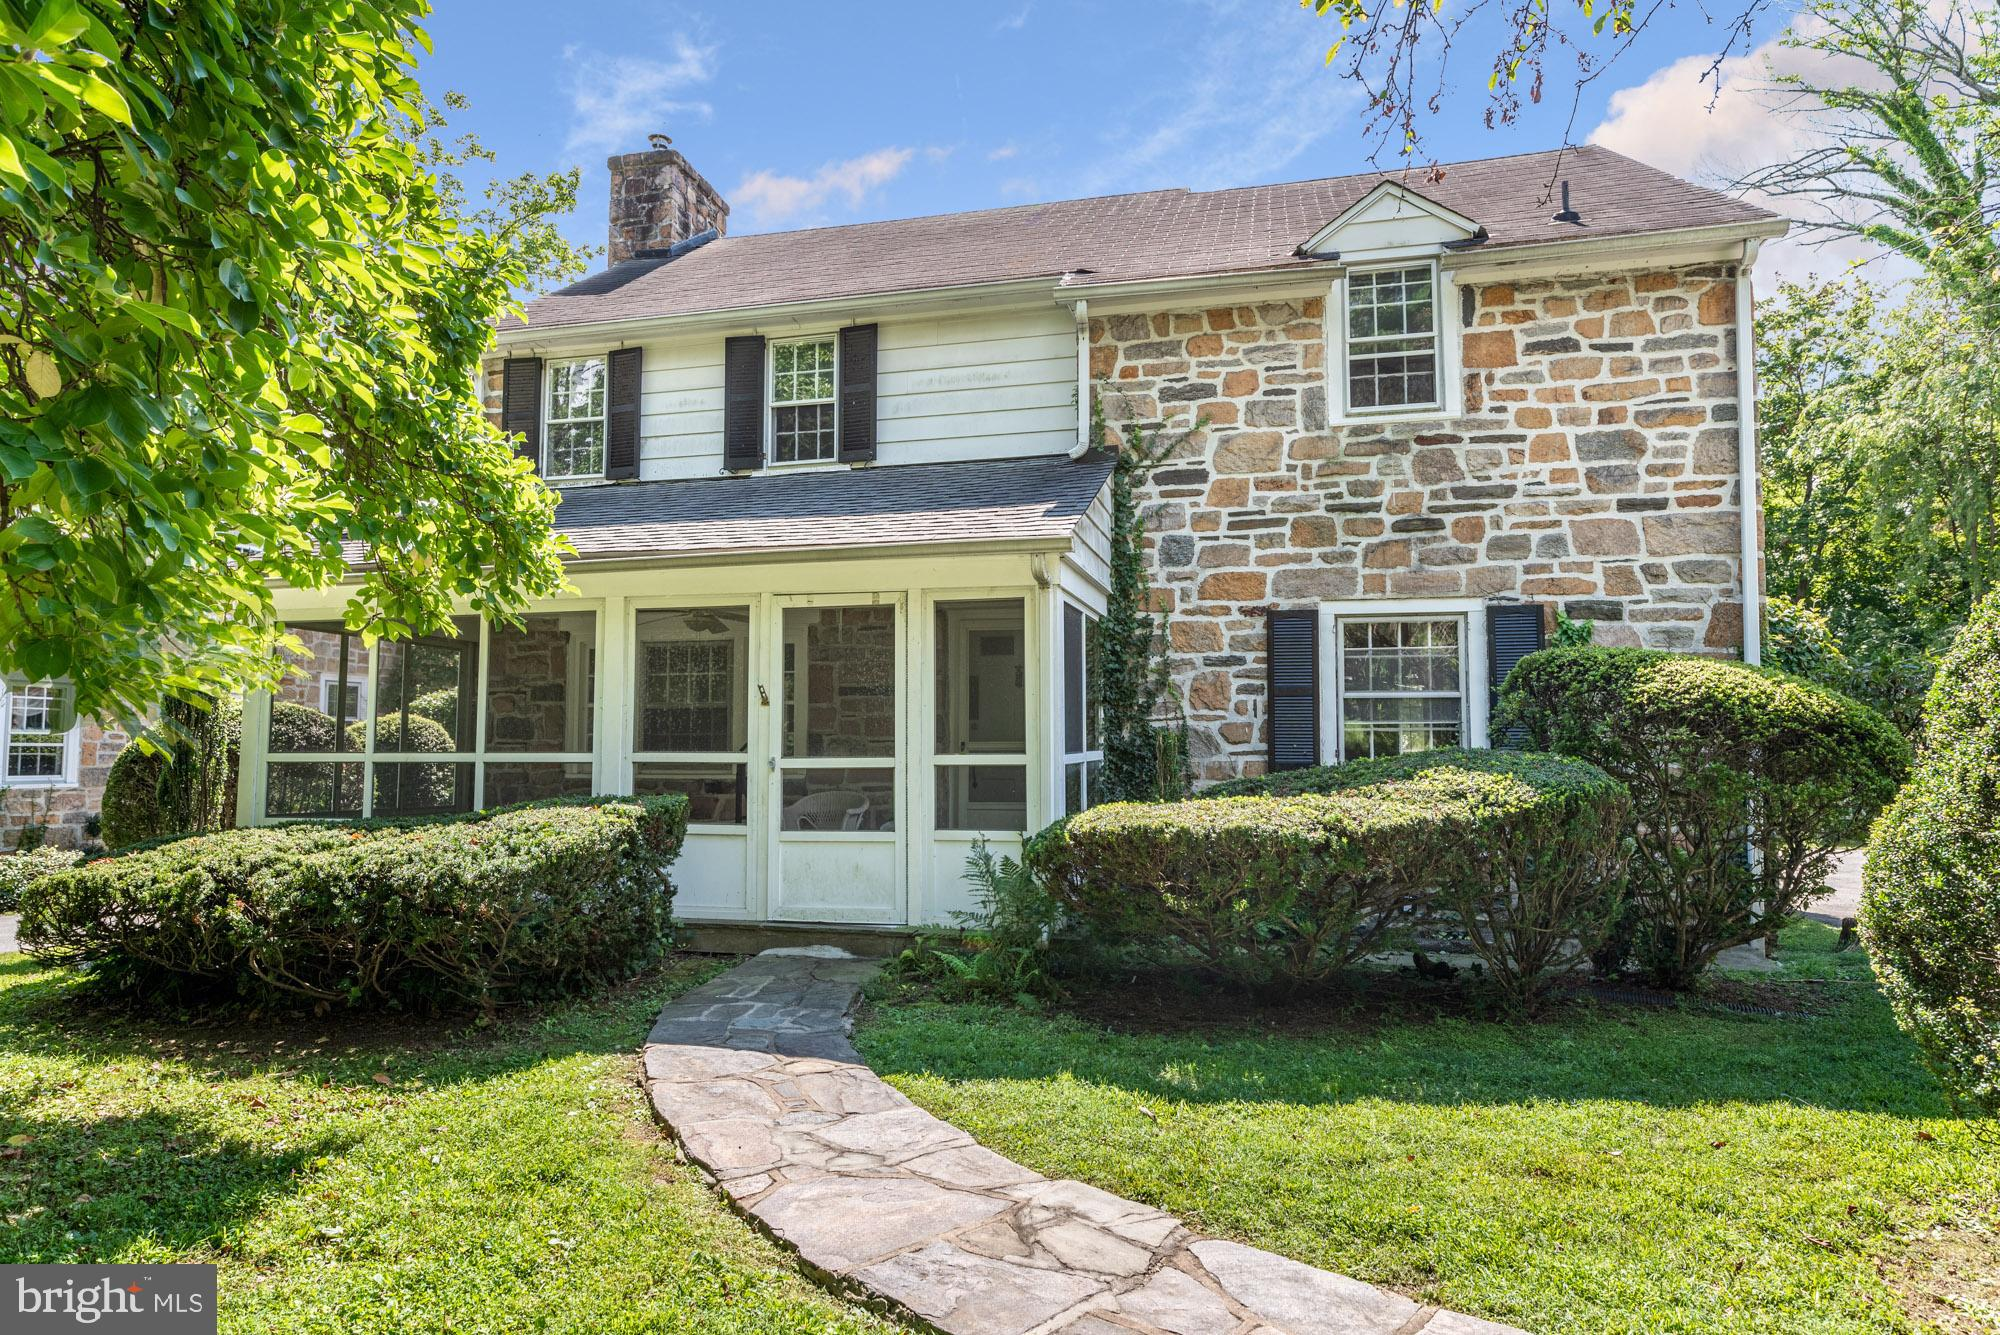 2-Story House In Haverford